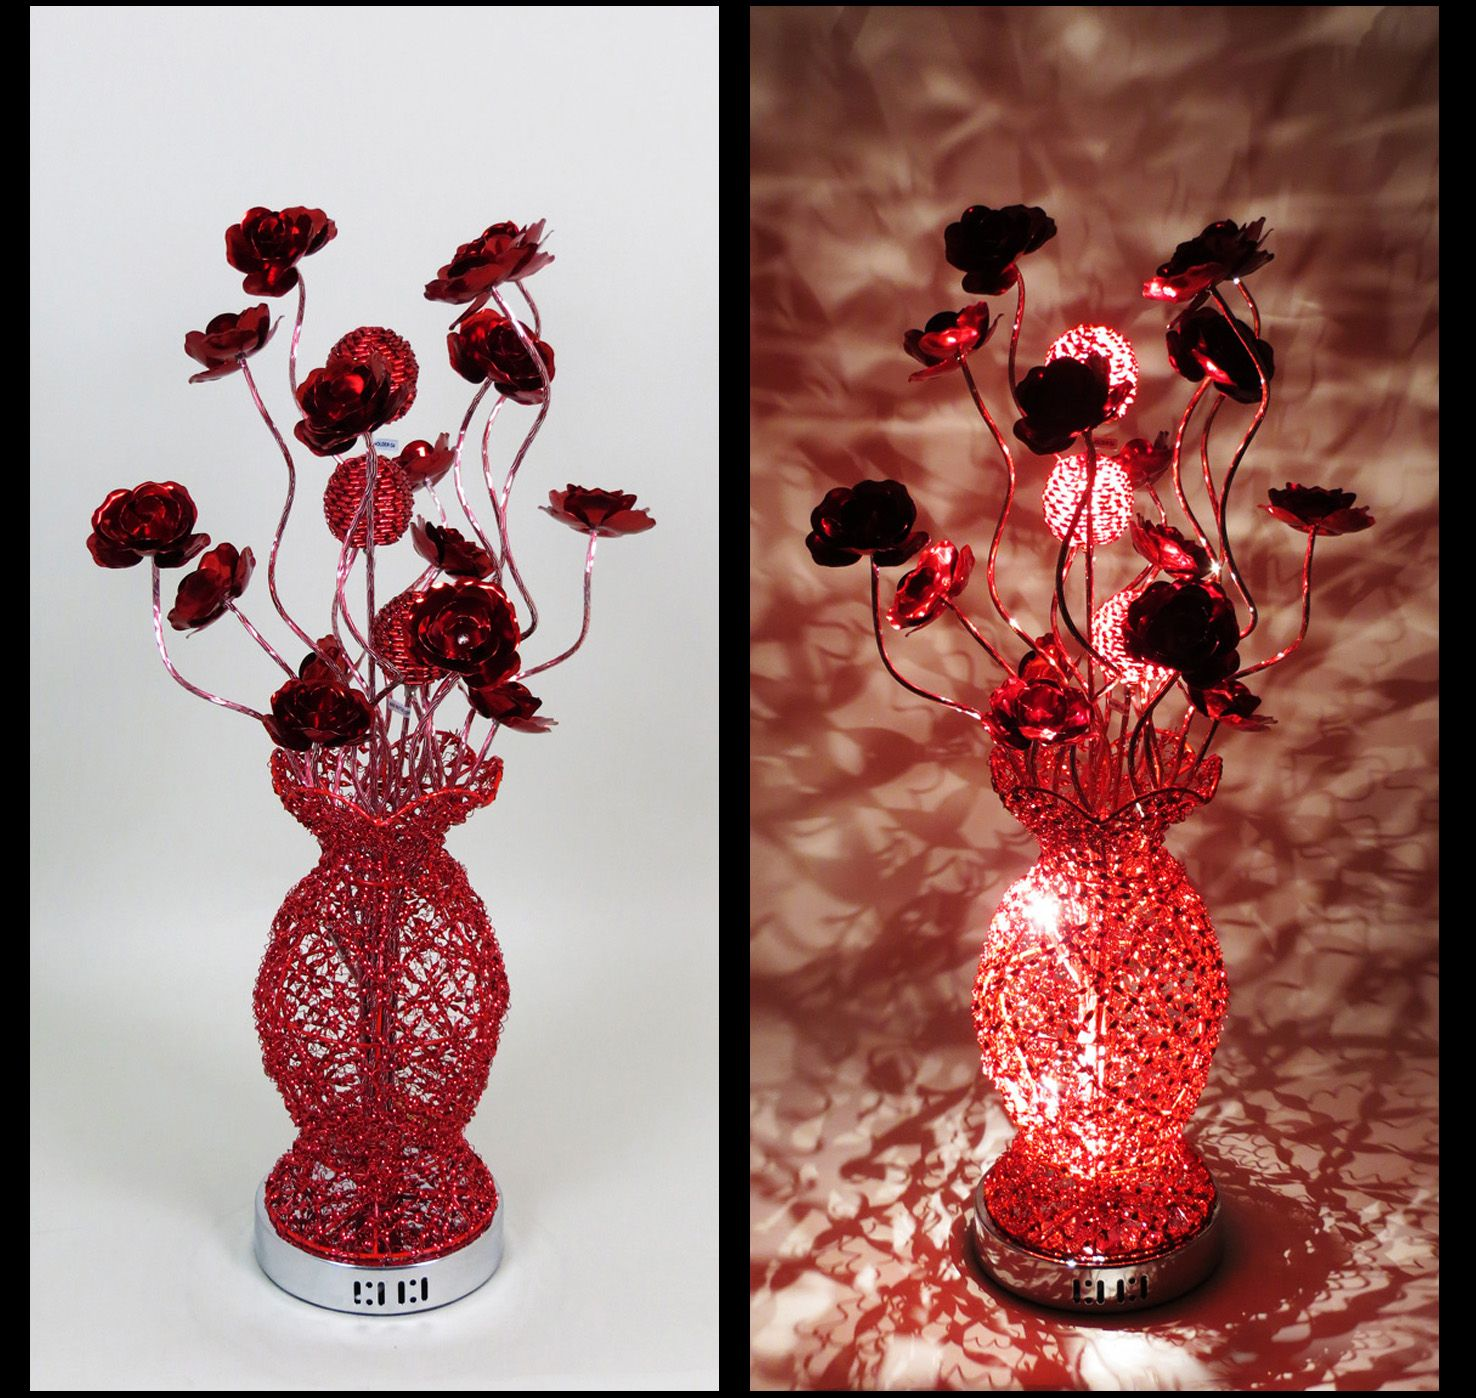 http://www.wirelamps.co.uk/WLT30695Red.html  All Red Medium Sized Woven Wire and Aluminium Table Lamp - featuring Bloomed Red Flower Heads